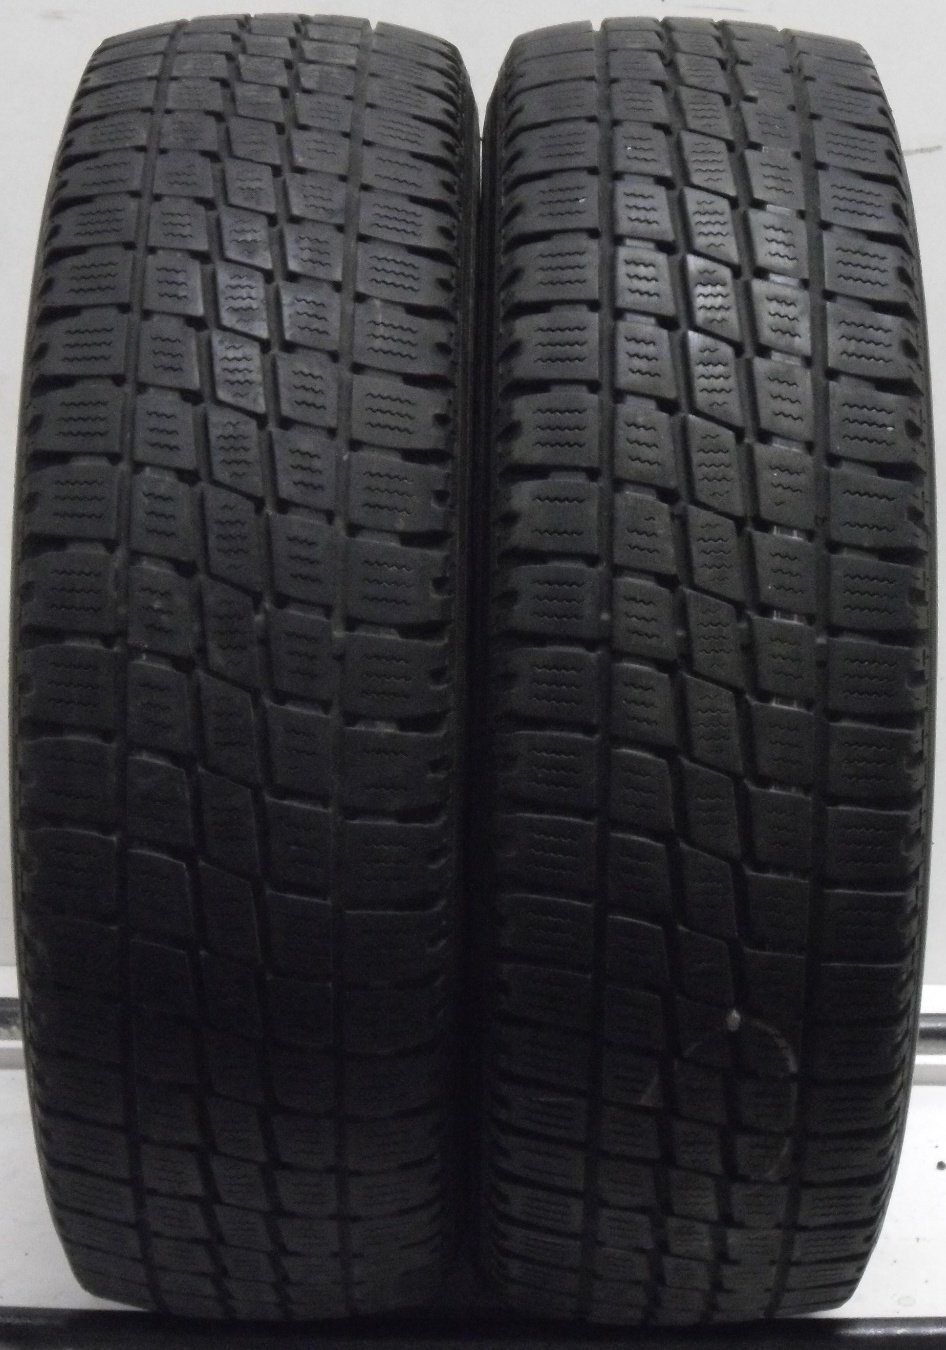 2 2057015 Toyo 205 70 15 Van Part Worn Car Tyres Ho9 Commercial x2 Two 4mm to 5.5mm